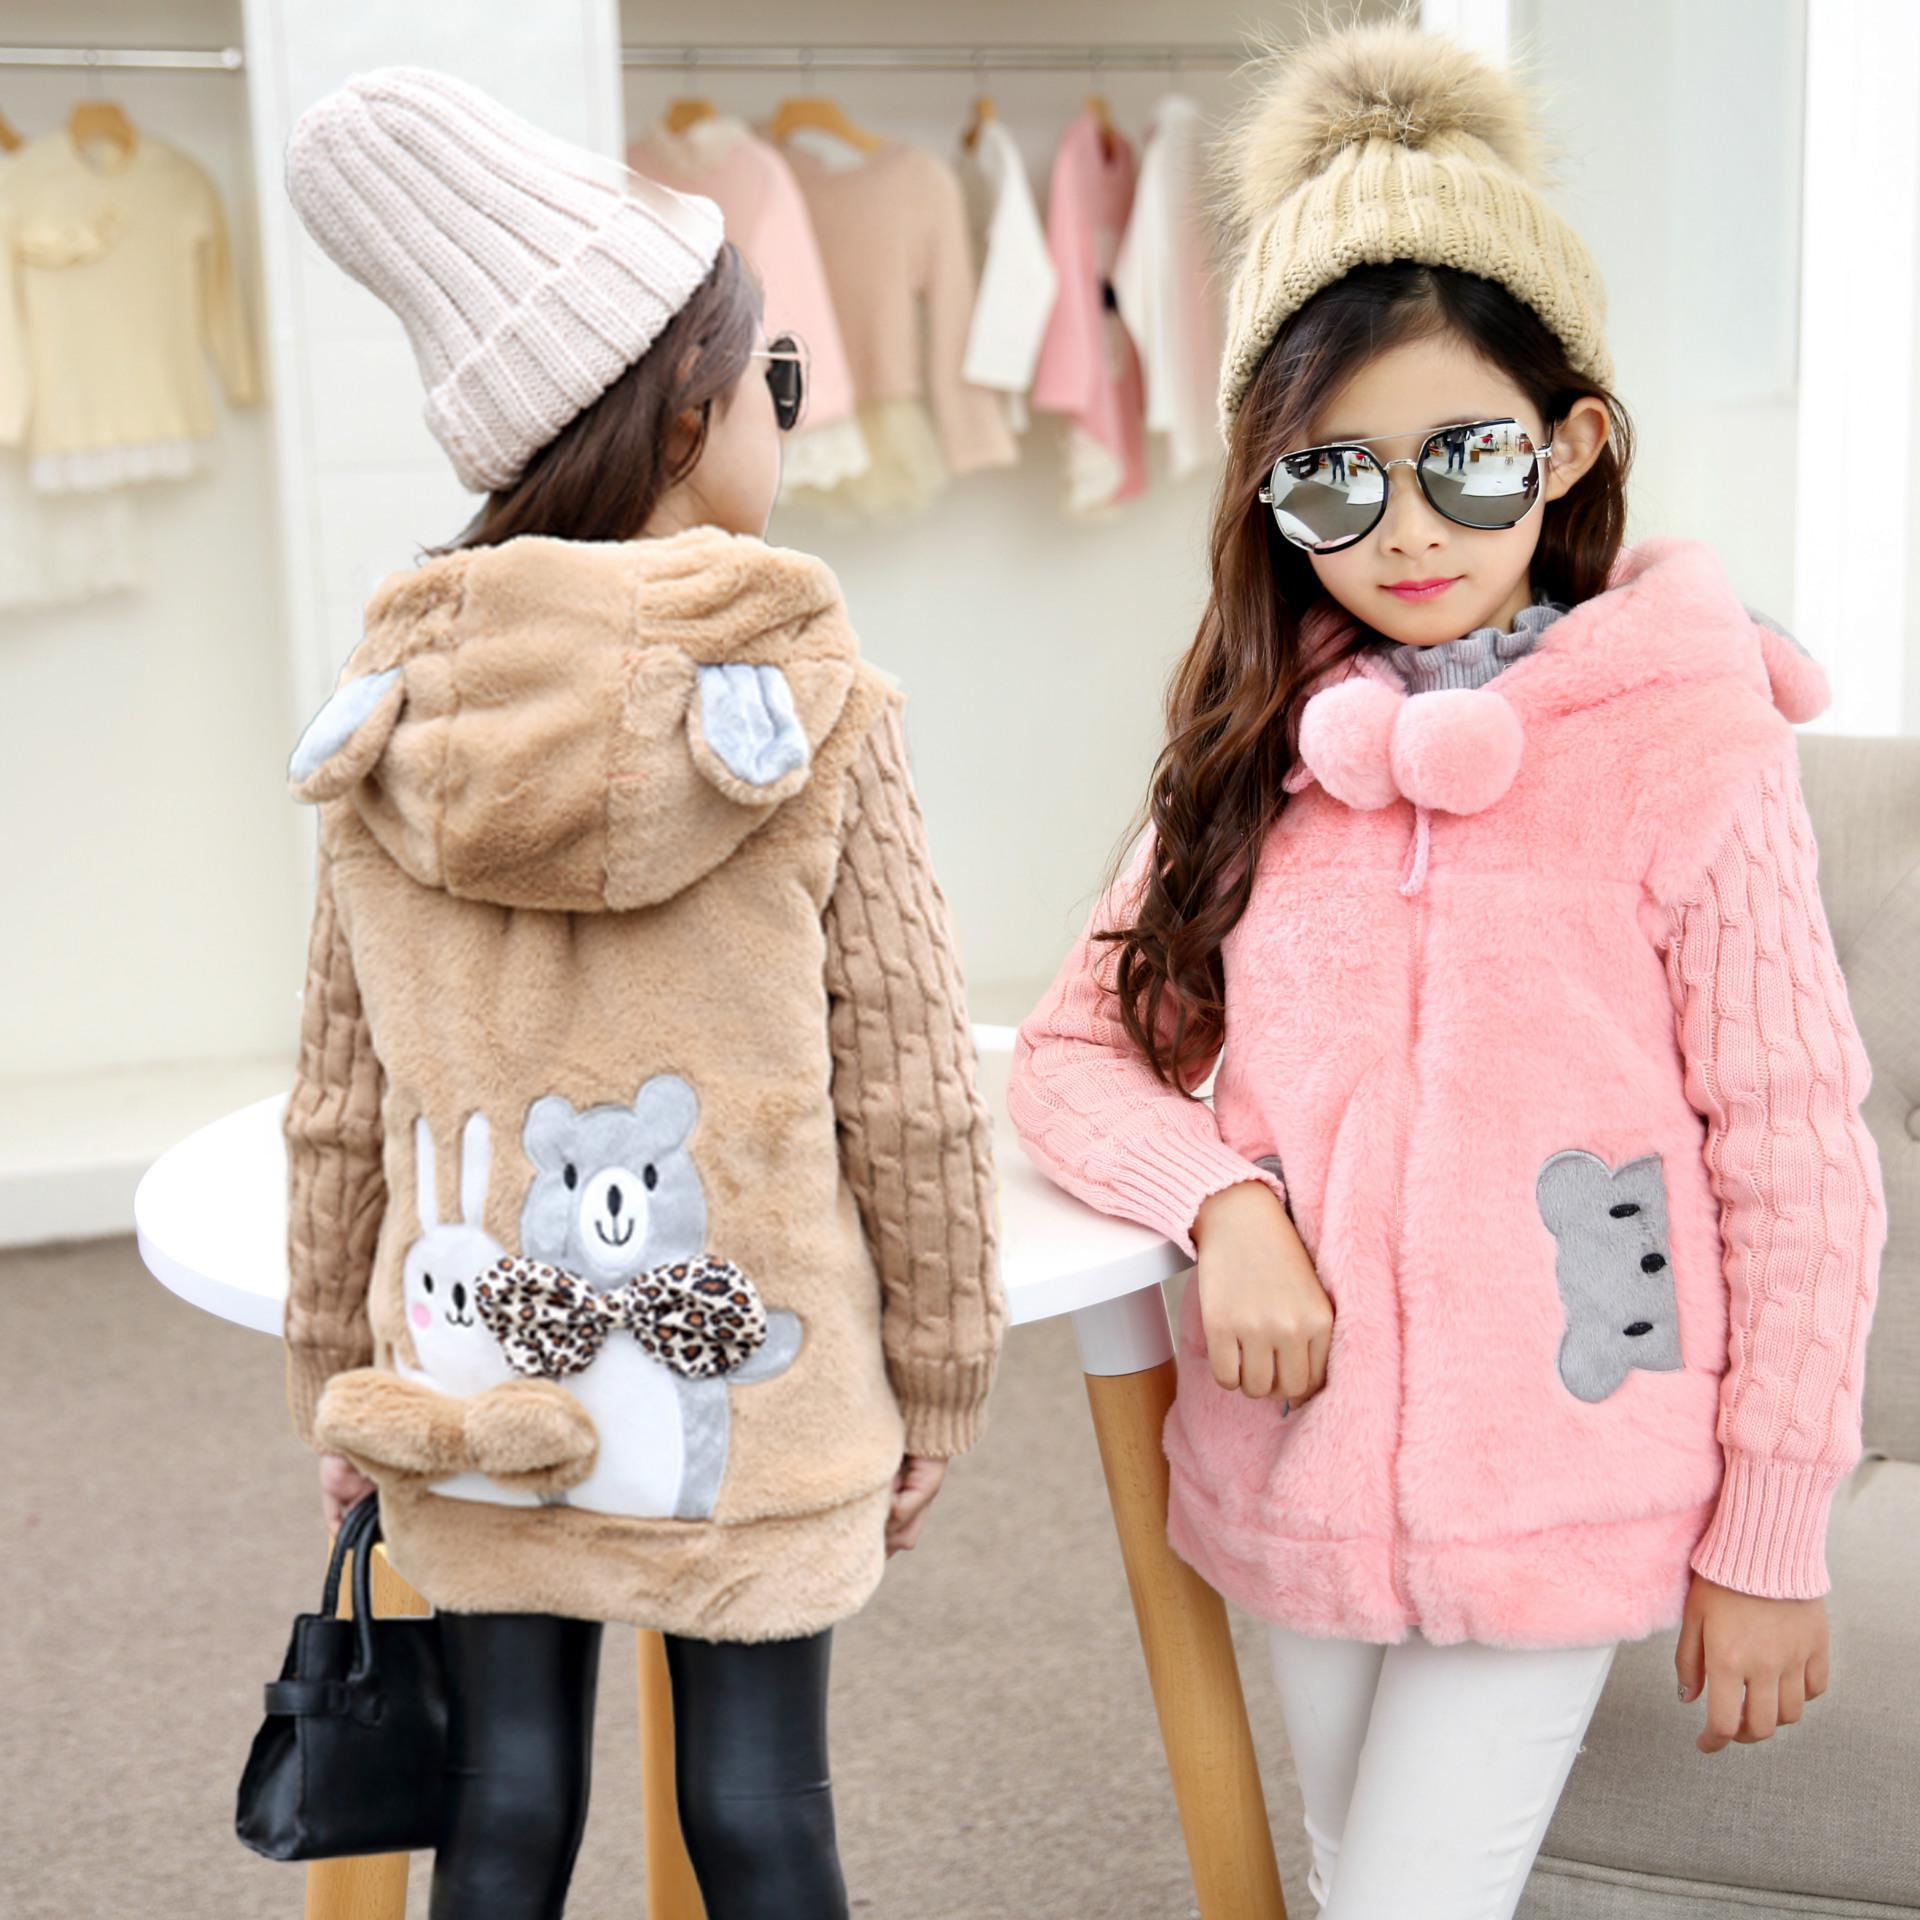 Girls Coats Winter Thicking Warm outwear Cotton Children Clothing Kids Clothes Jackets Girls brushed keep cotton-padded jacket 2014 winter mens jackets and coats casaco masculino male warm thick cotton padded high quality hot sale outwear clothes s636